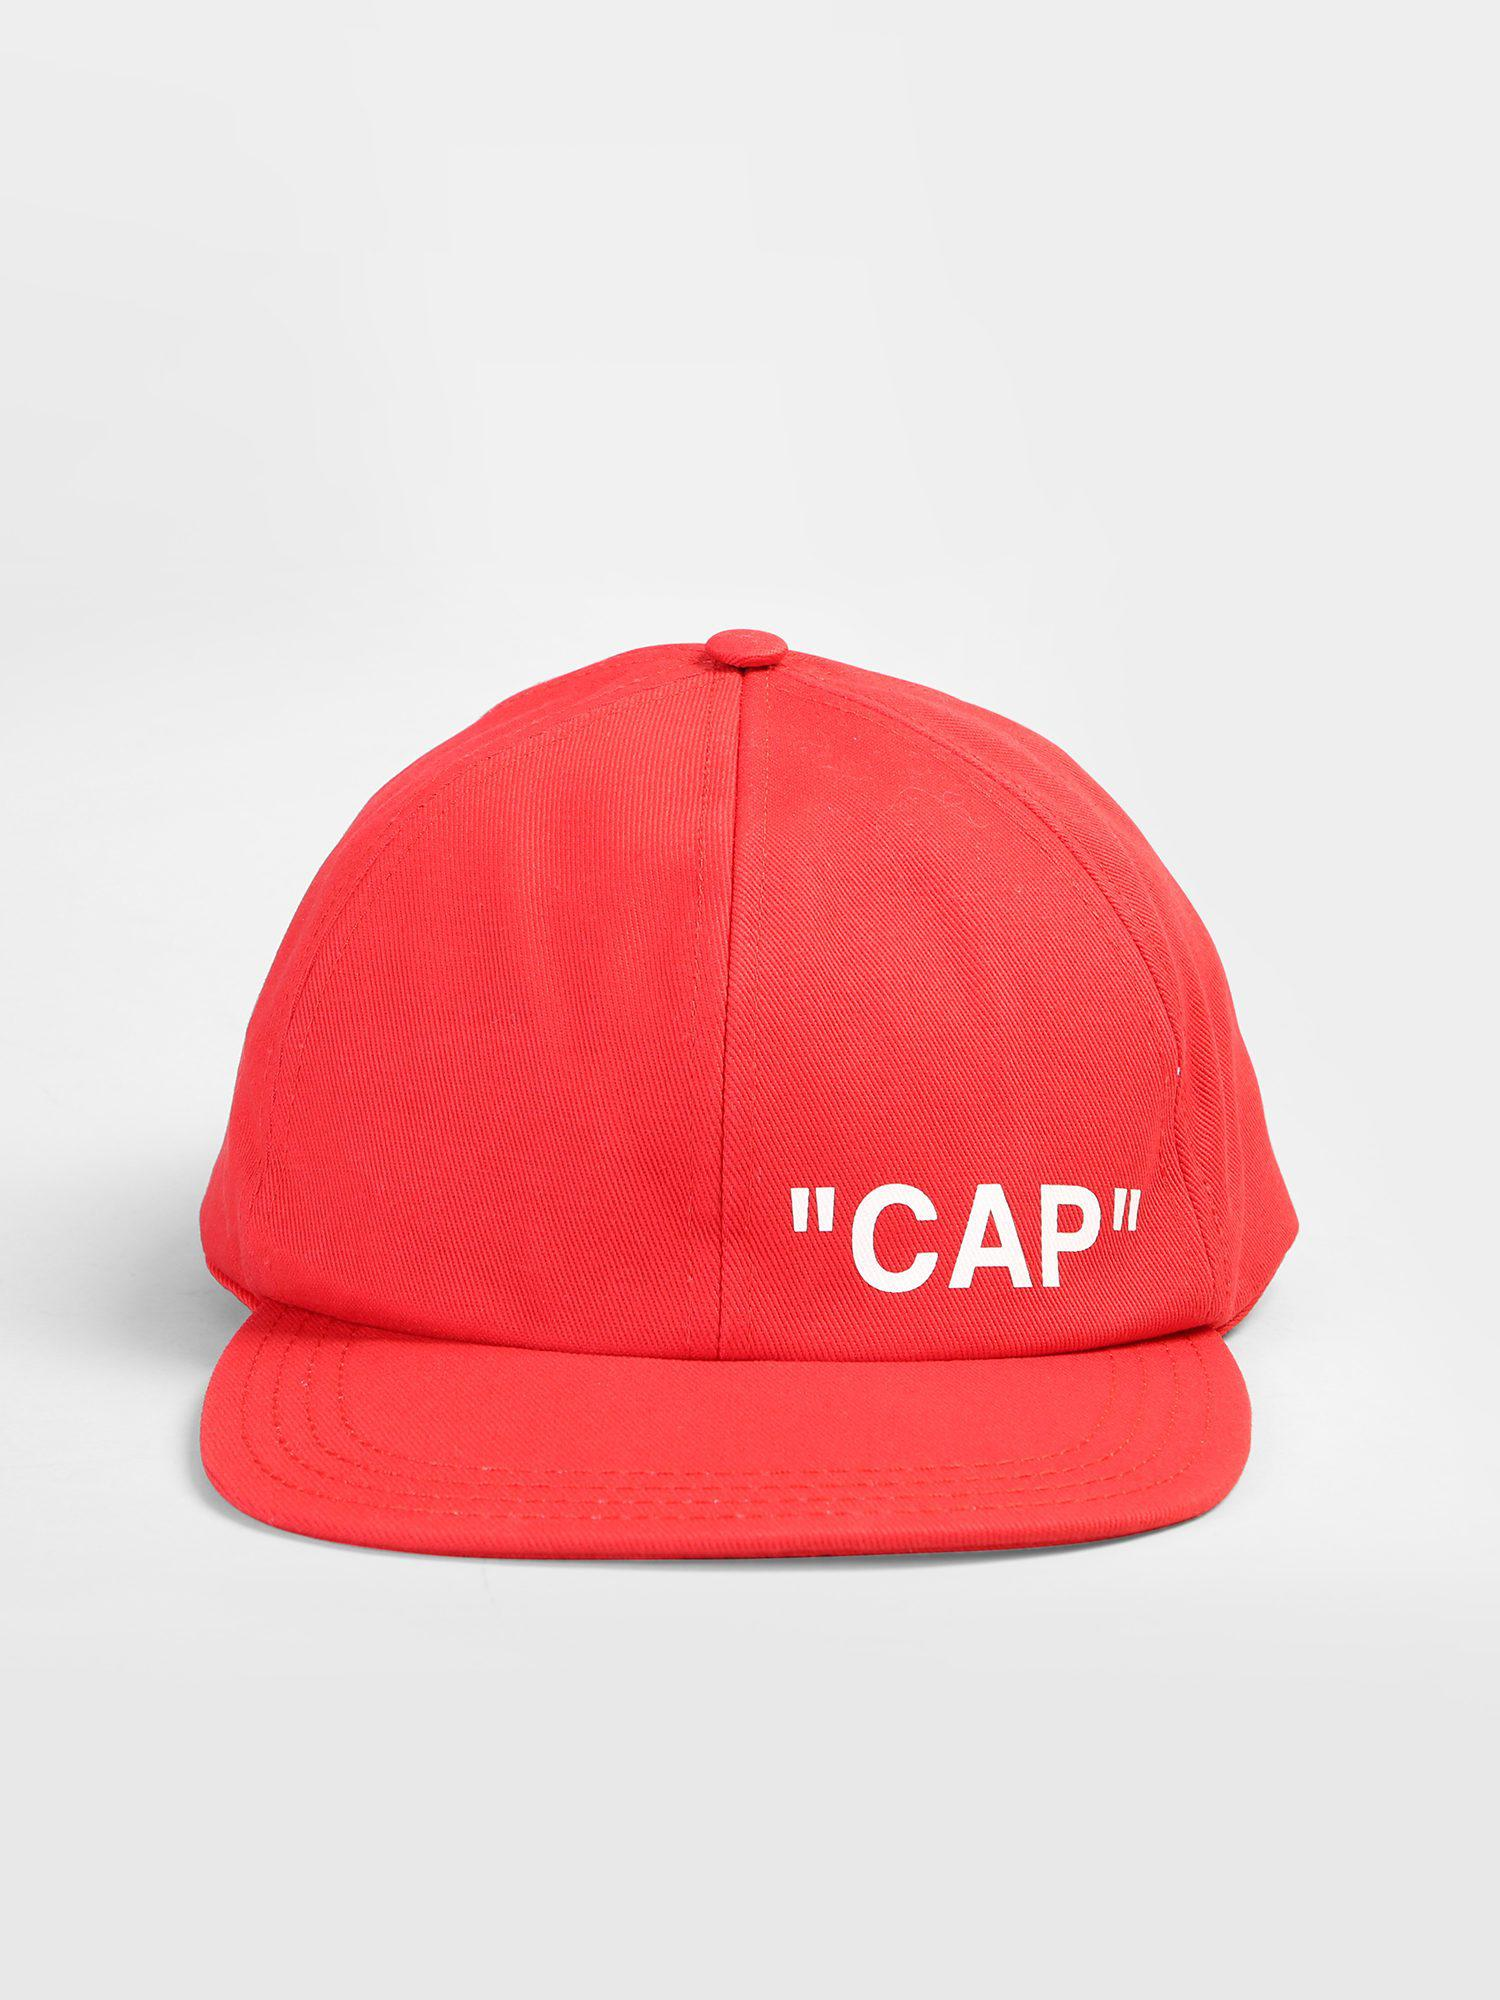 94e49ab21e5 ... attractive price cffc4 bb9c5 Lyst - Off-White CO Virgil Abloh Cotton  Canvas Baseball Hat ...